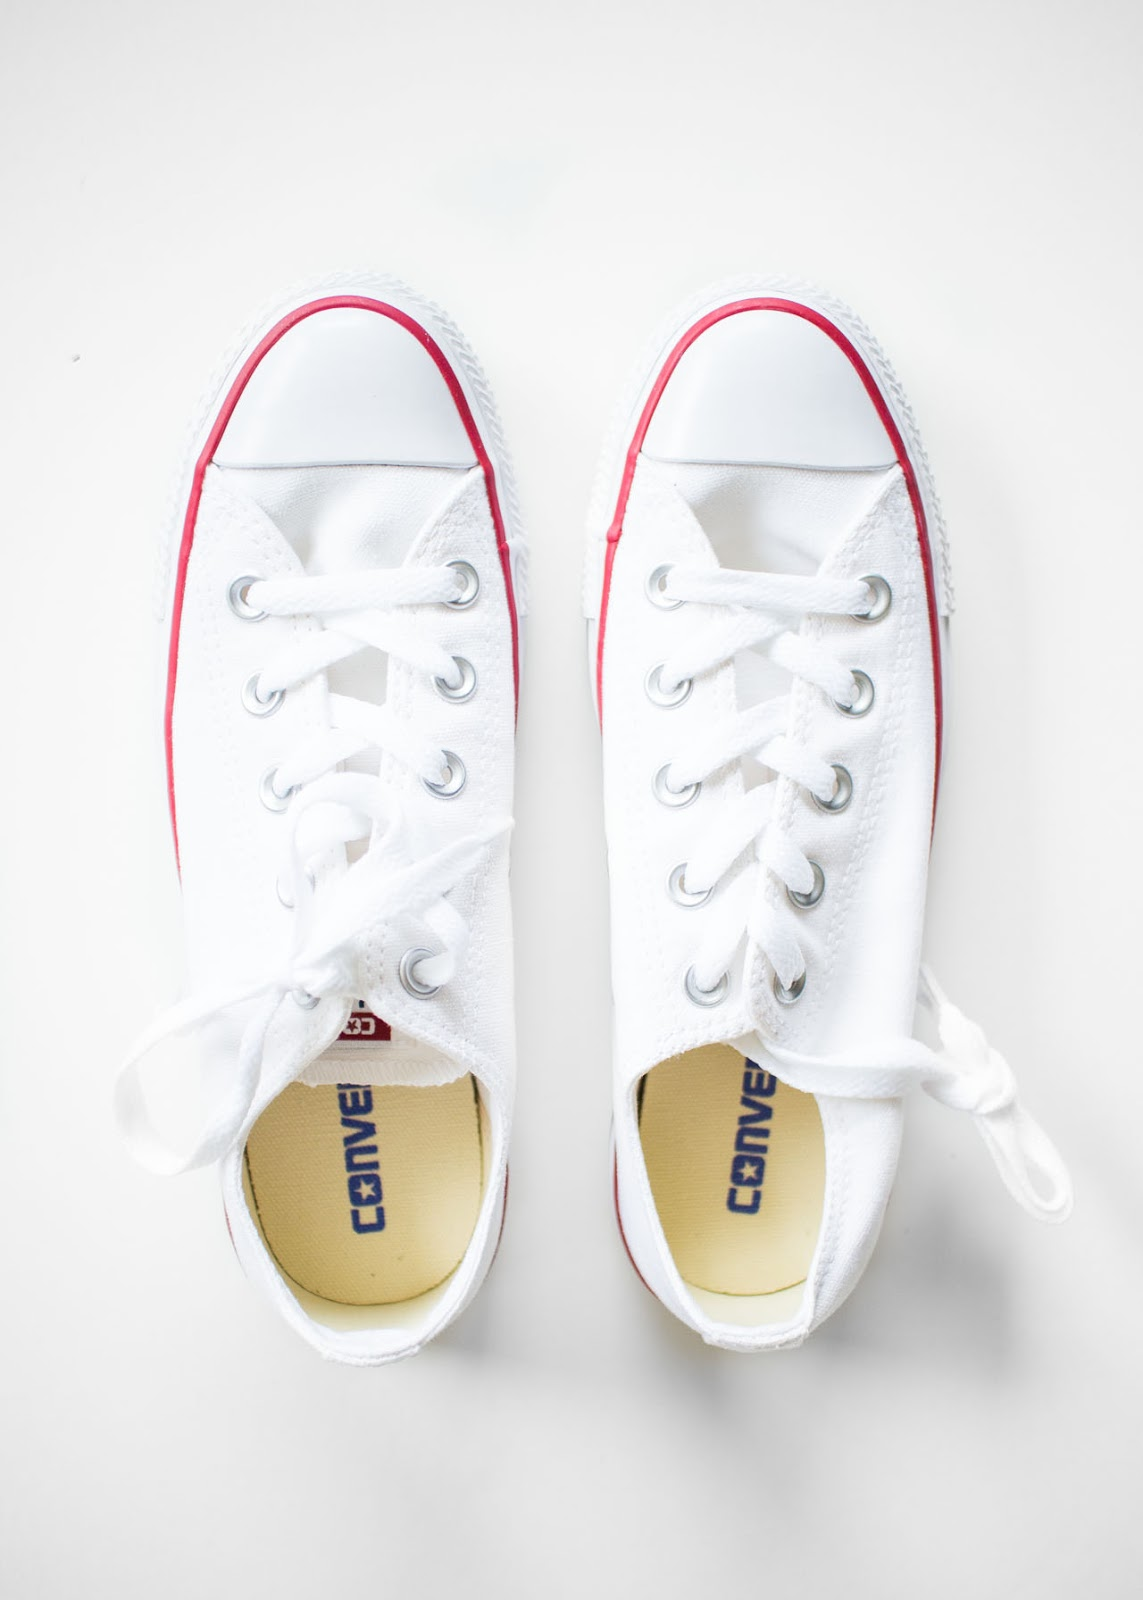 new in wardrobe - Converse chuck taylor all stars - sneakers